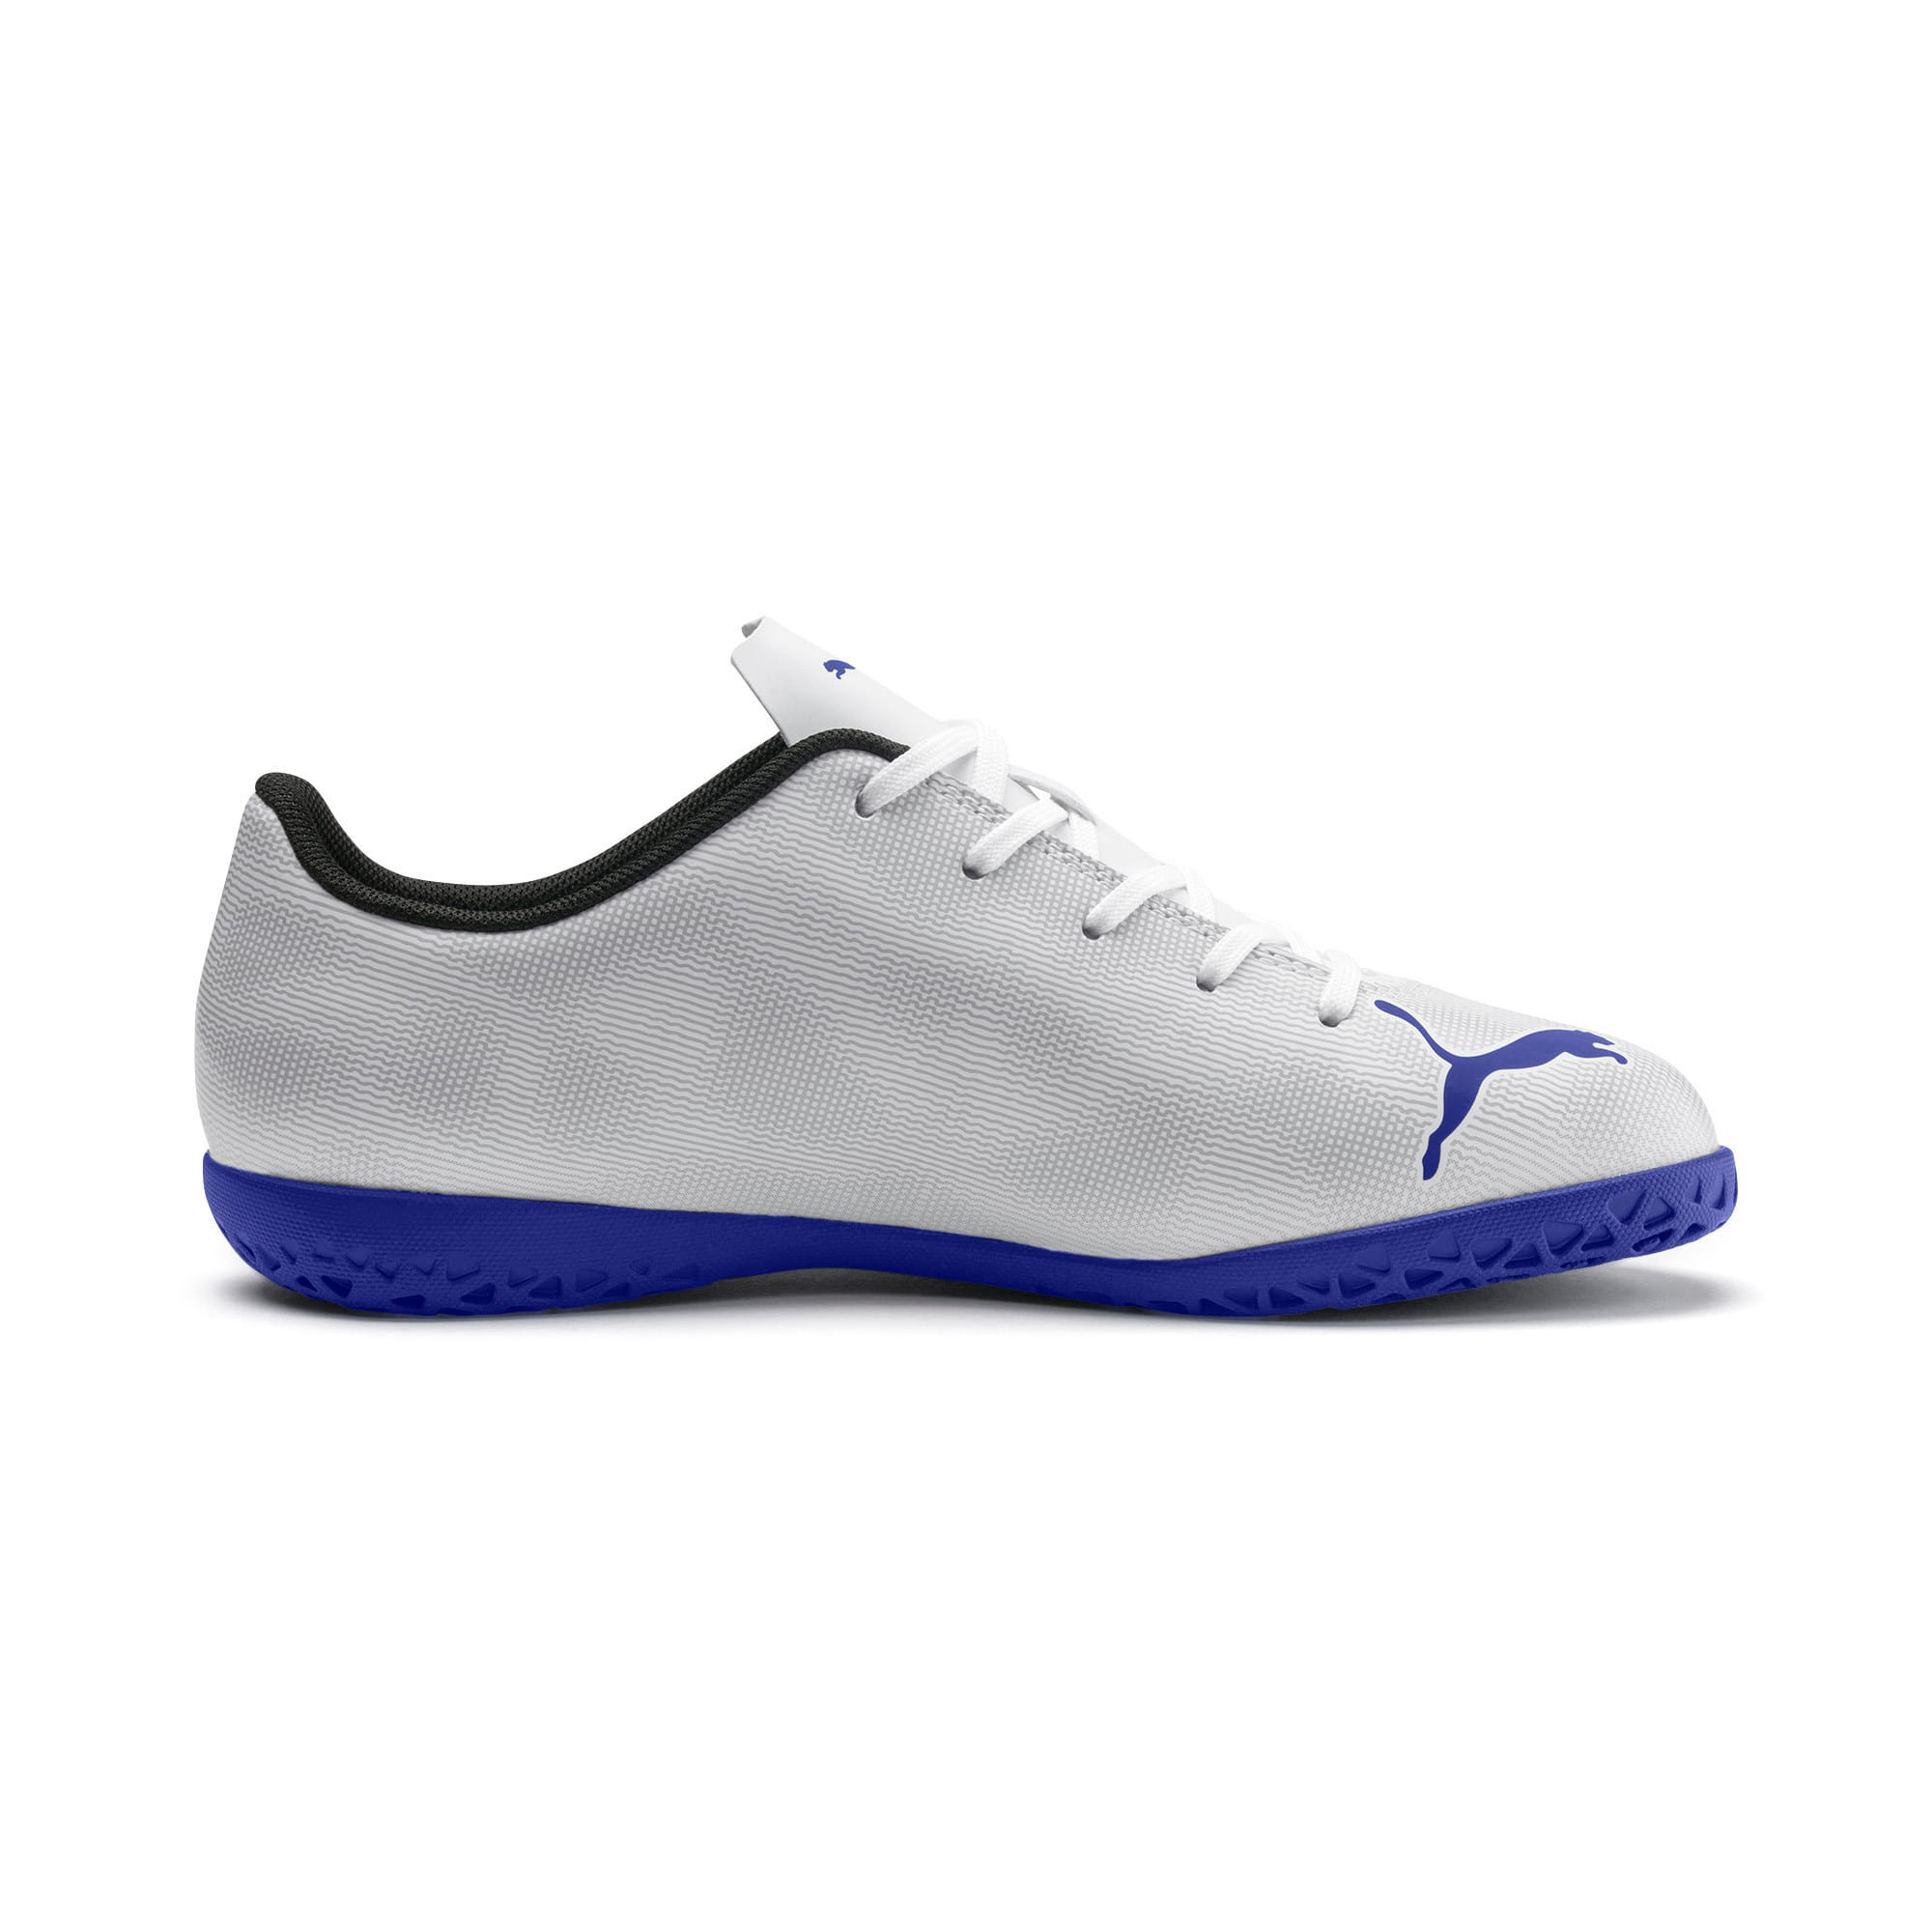 Thumbnail 5 of Rapido IT Youth Football Boots, White-Royal Blue-Light Gray, medium-IND